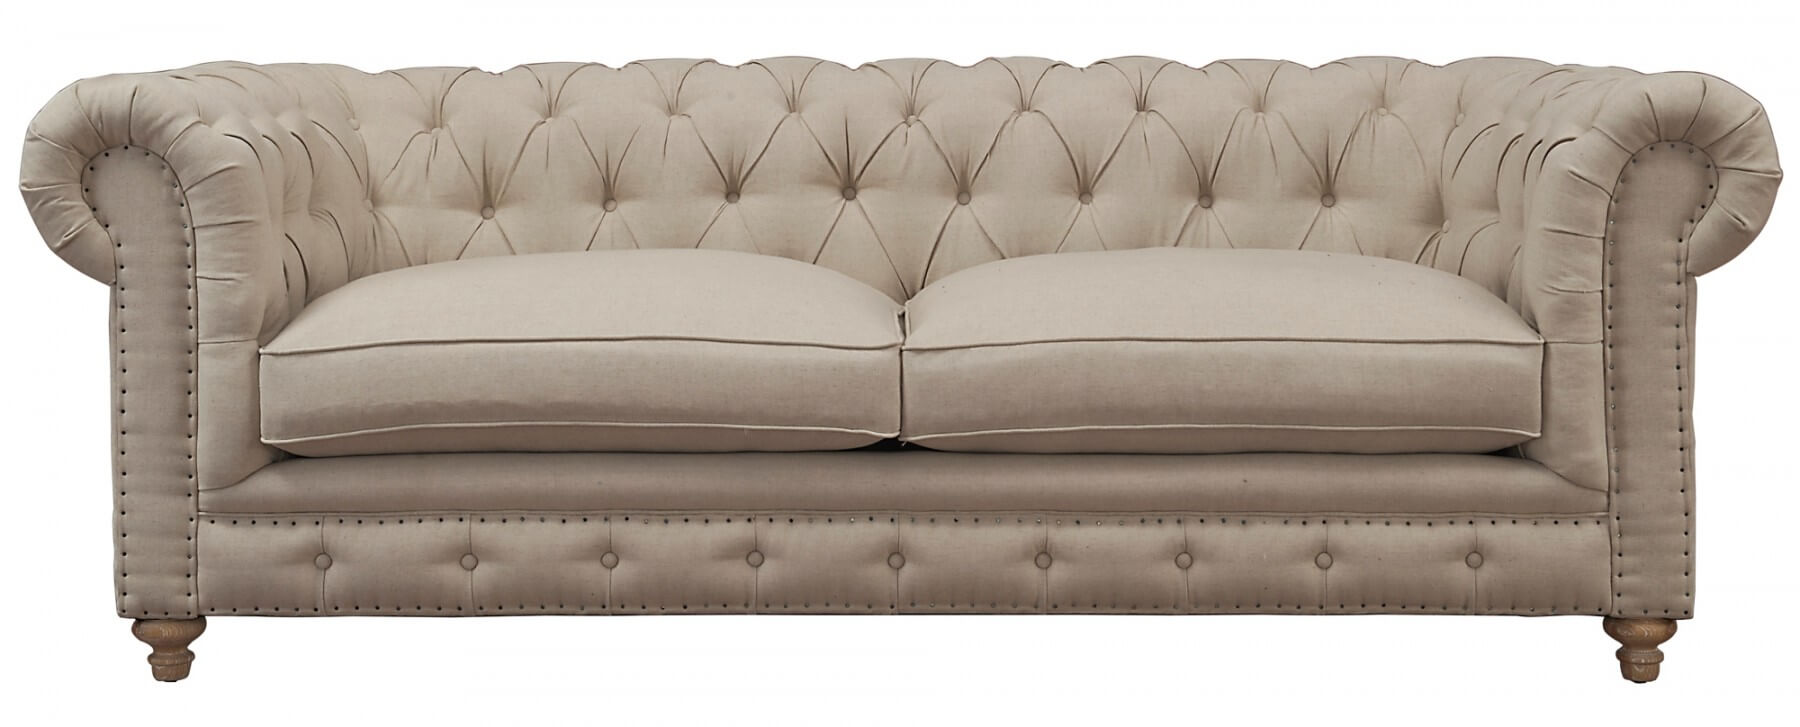 Oxford Beige Linen Sofa By Tov Furniture Online At Best Price Sod